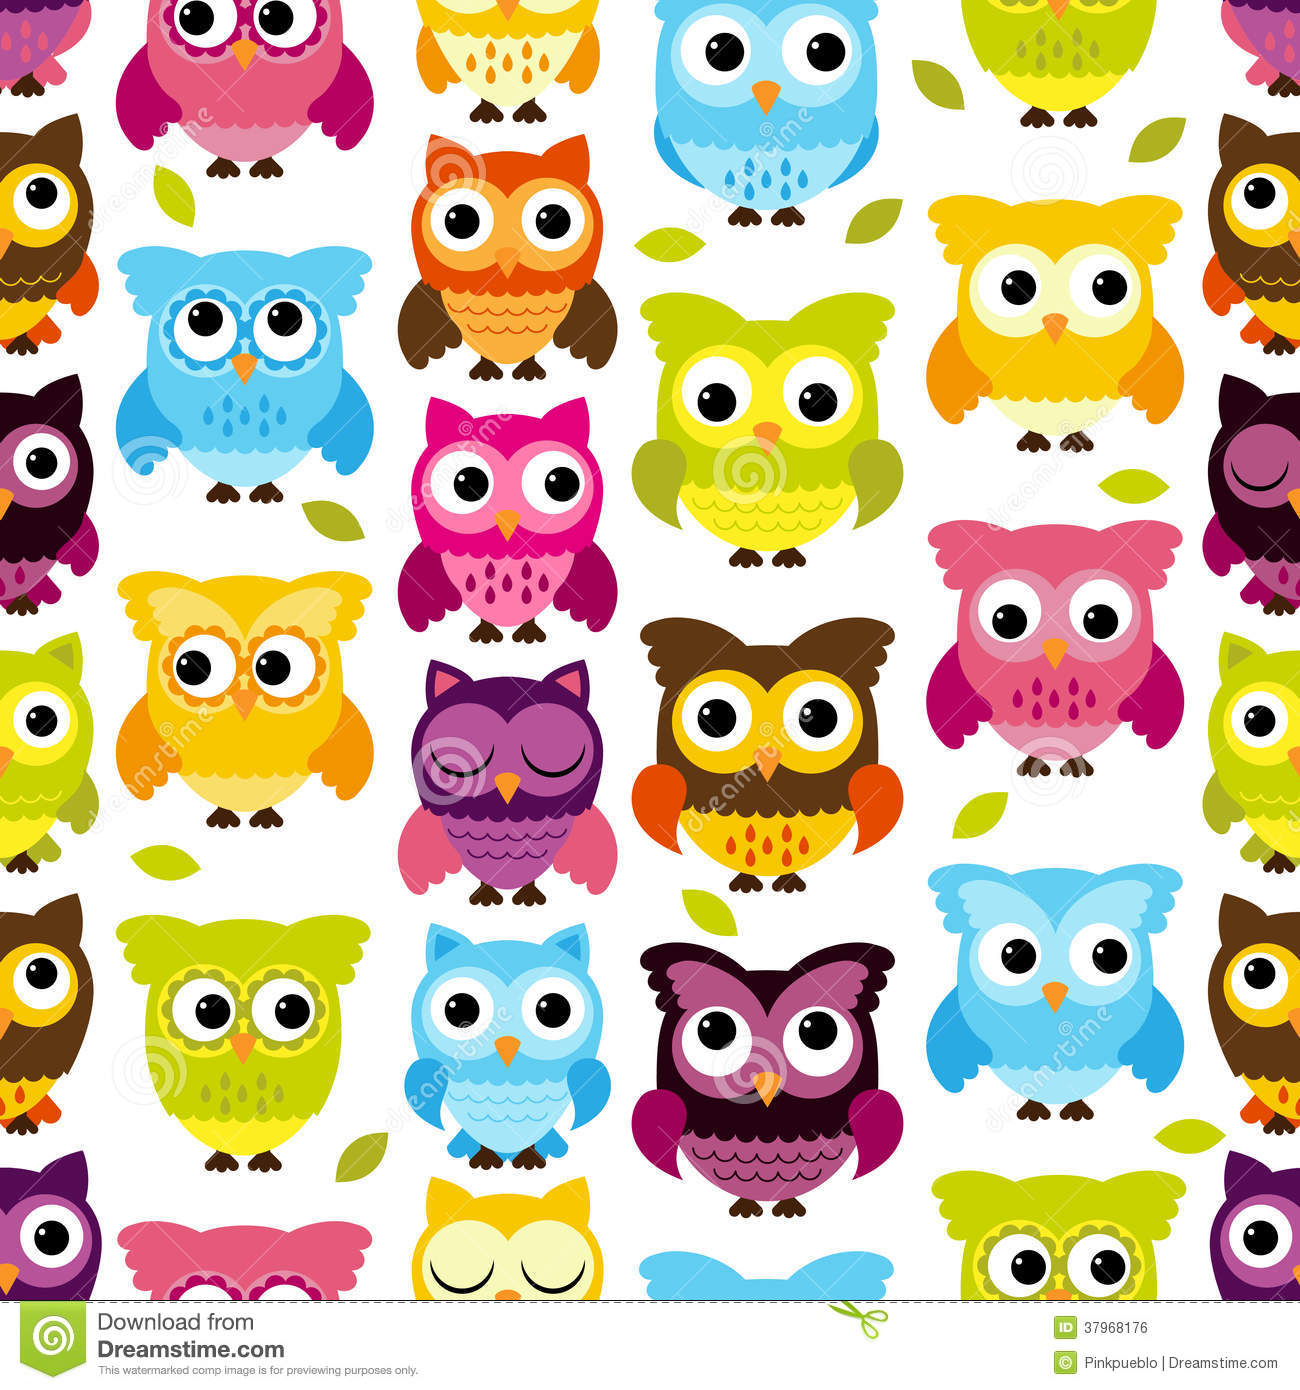 Free Owl Wallpapers: Seamless And Tileable Vector Owl Background Pattern